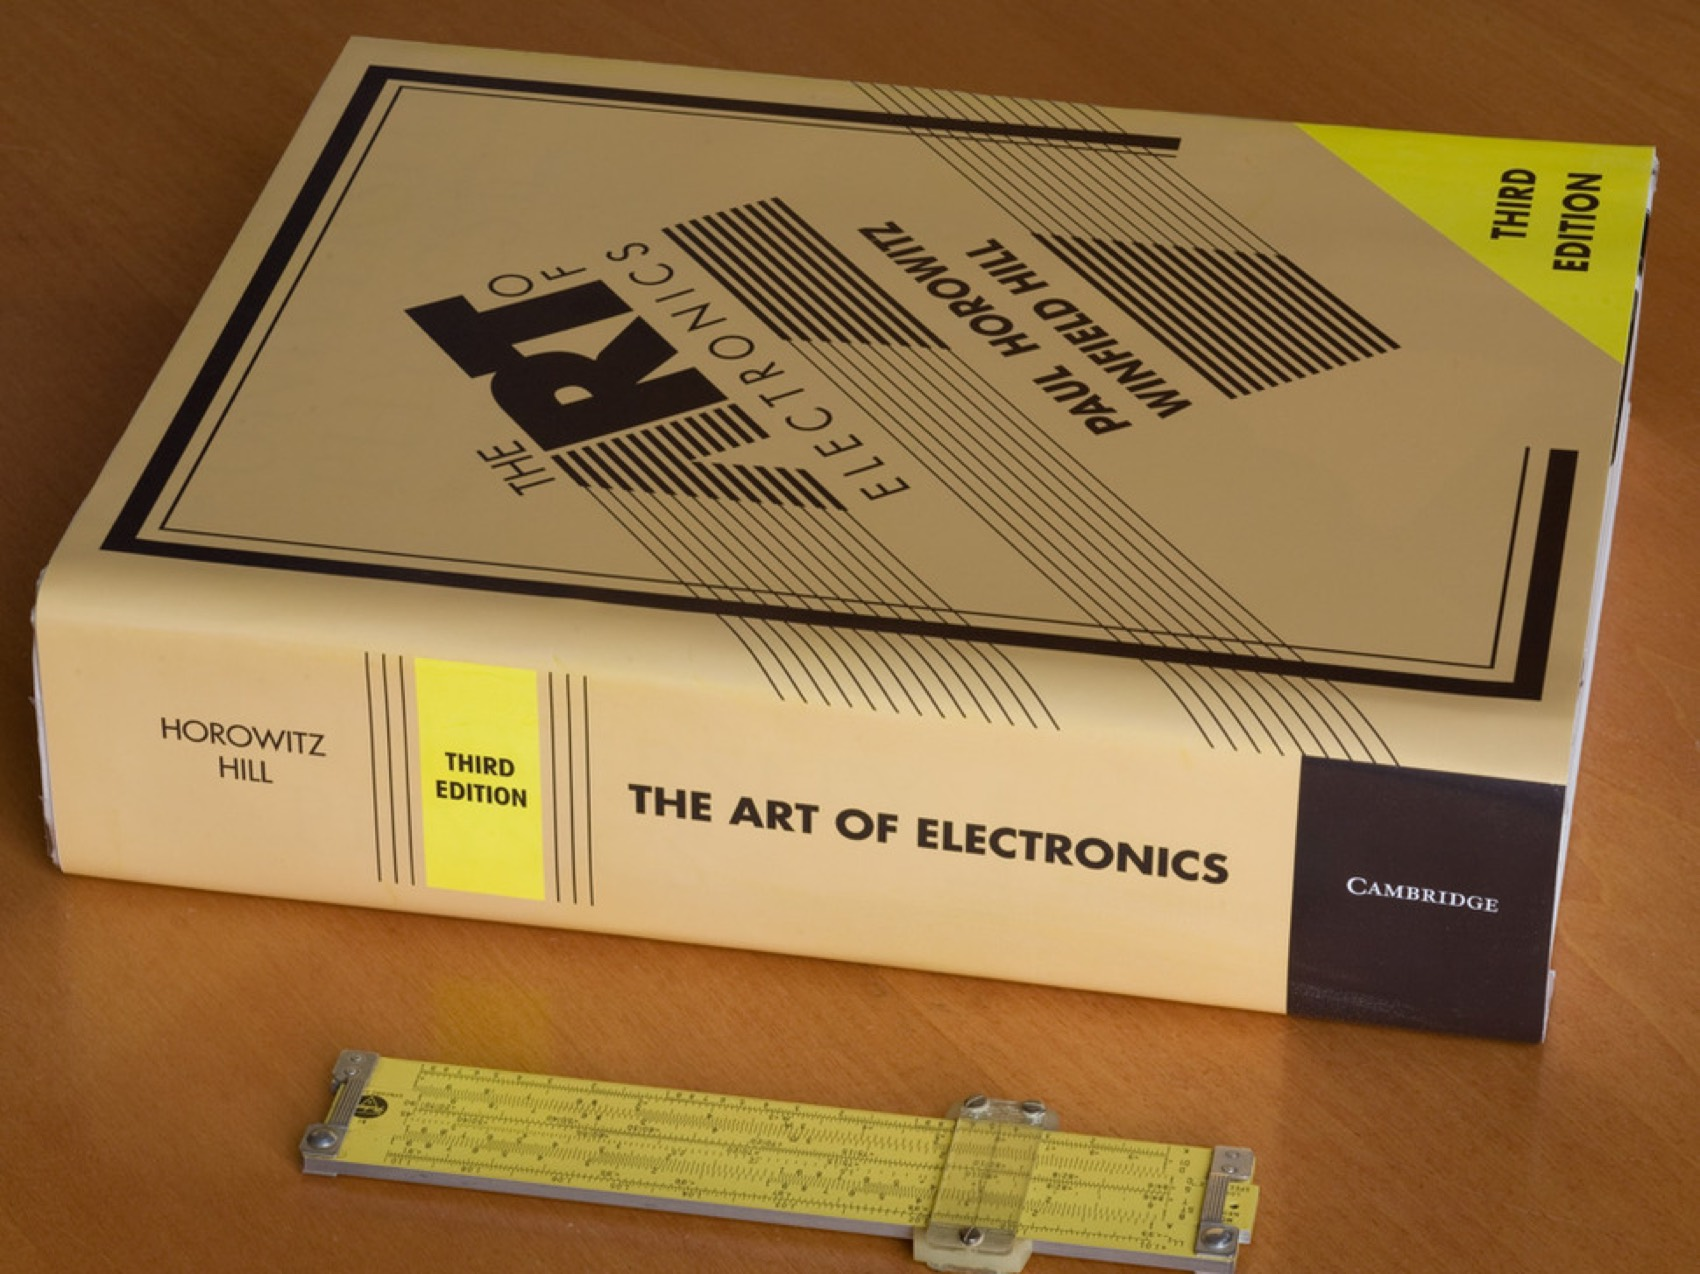 New Site The Art Of Electronics 3rd Edition By Horowitz And Hill C Reactance Impedance R L Textbook About Section Preface Adafruit Will Have Book Available In Our Store